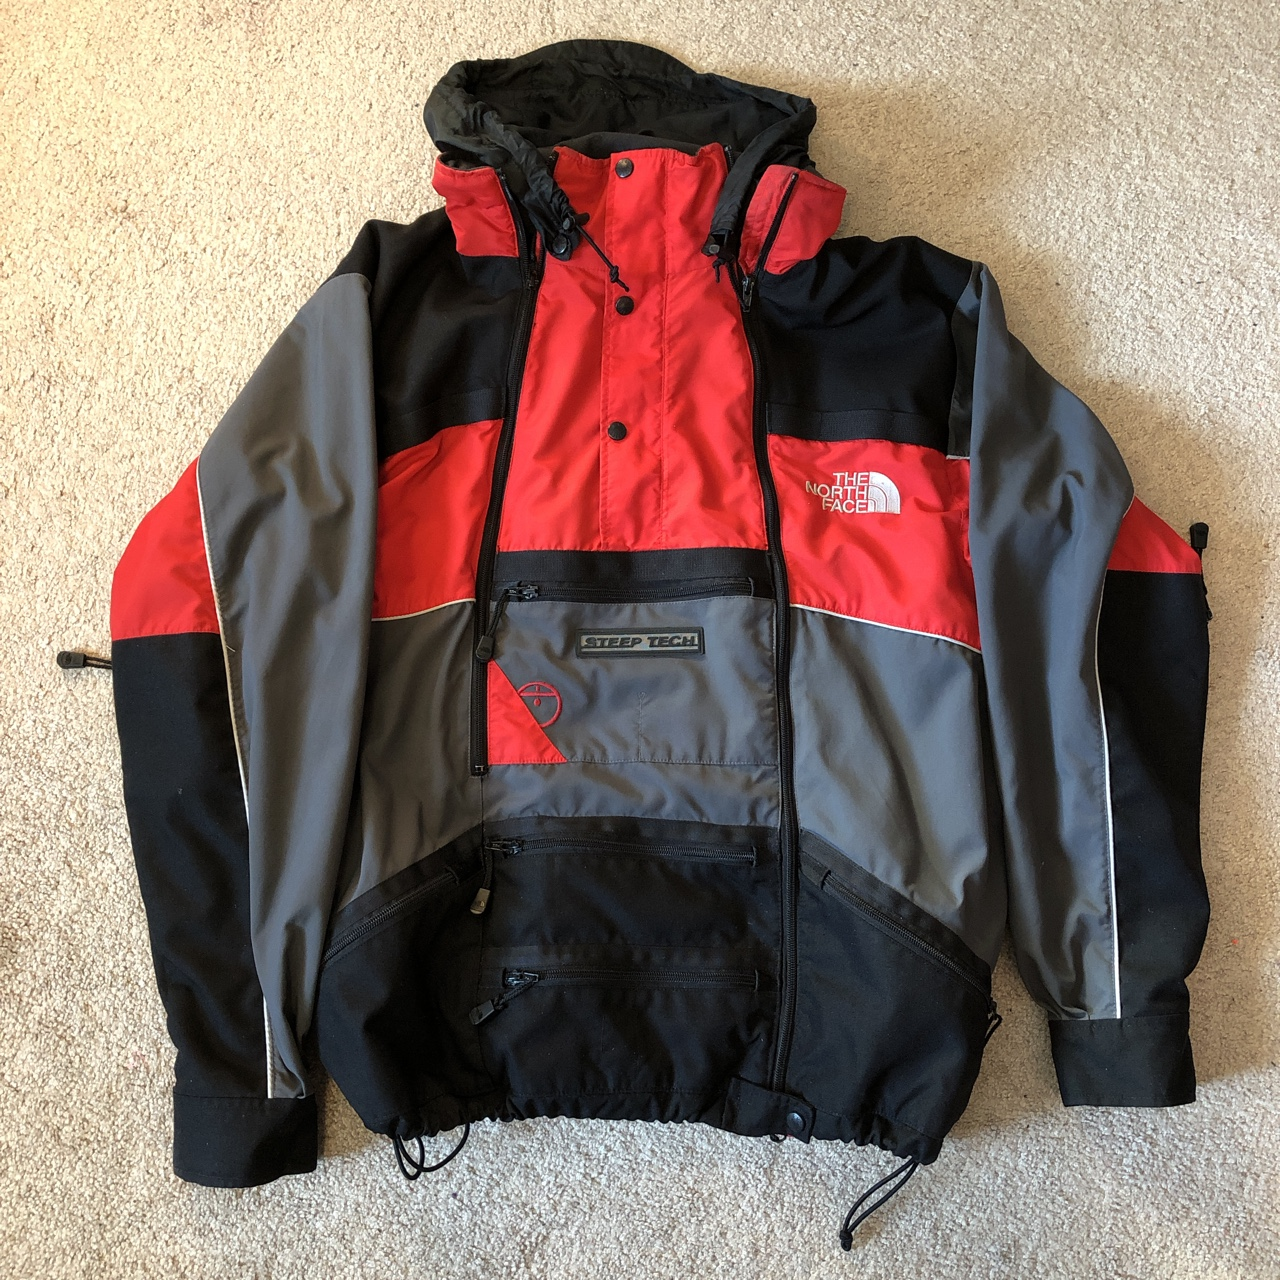 784567602 Vintage The North Face Steep Tech Work Shell Jacket... - Depop